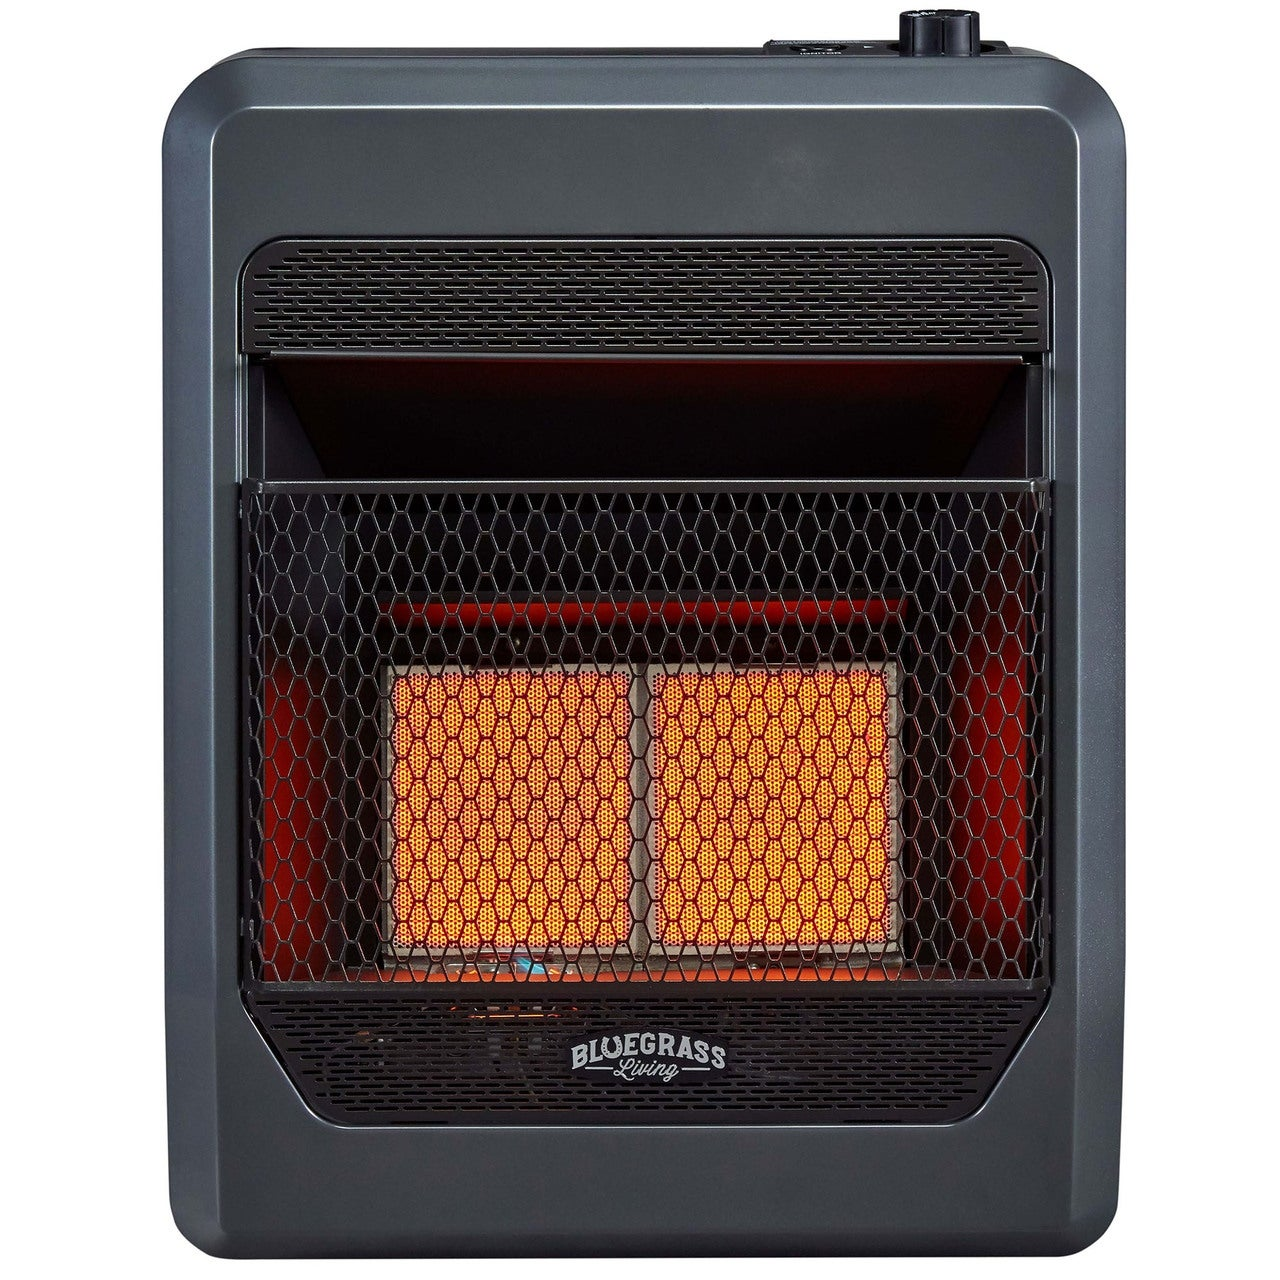 Bluegrass Living Natural Gas Vent Free Infrared Gas Space Heater With Blower And Base Feet 20 000 Btu Model B20tnir Bb Overstock 31666417